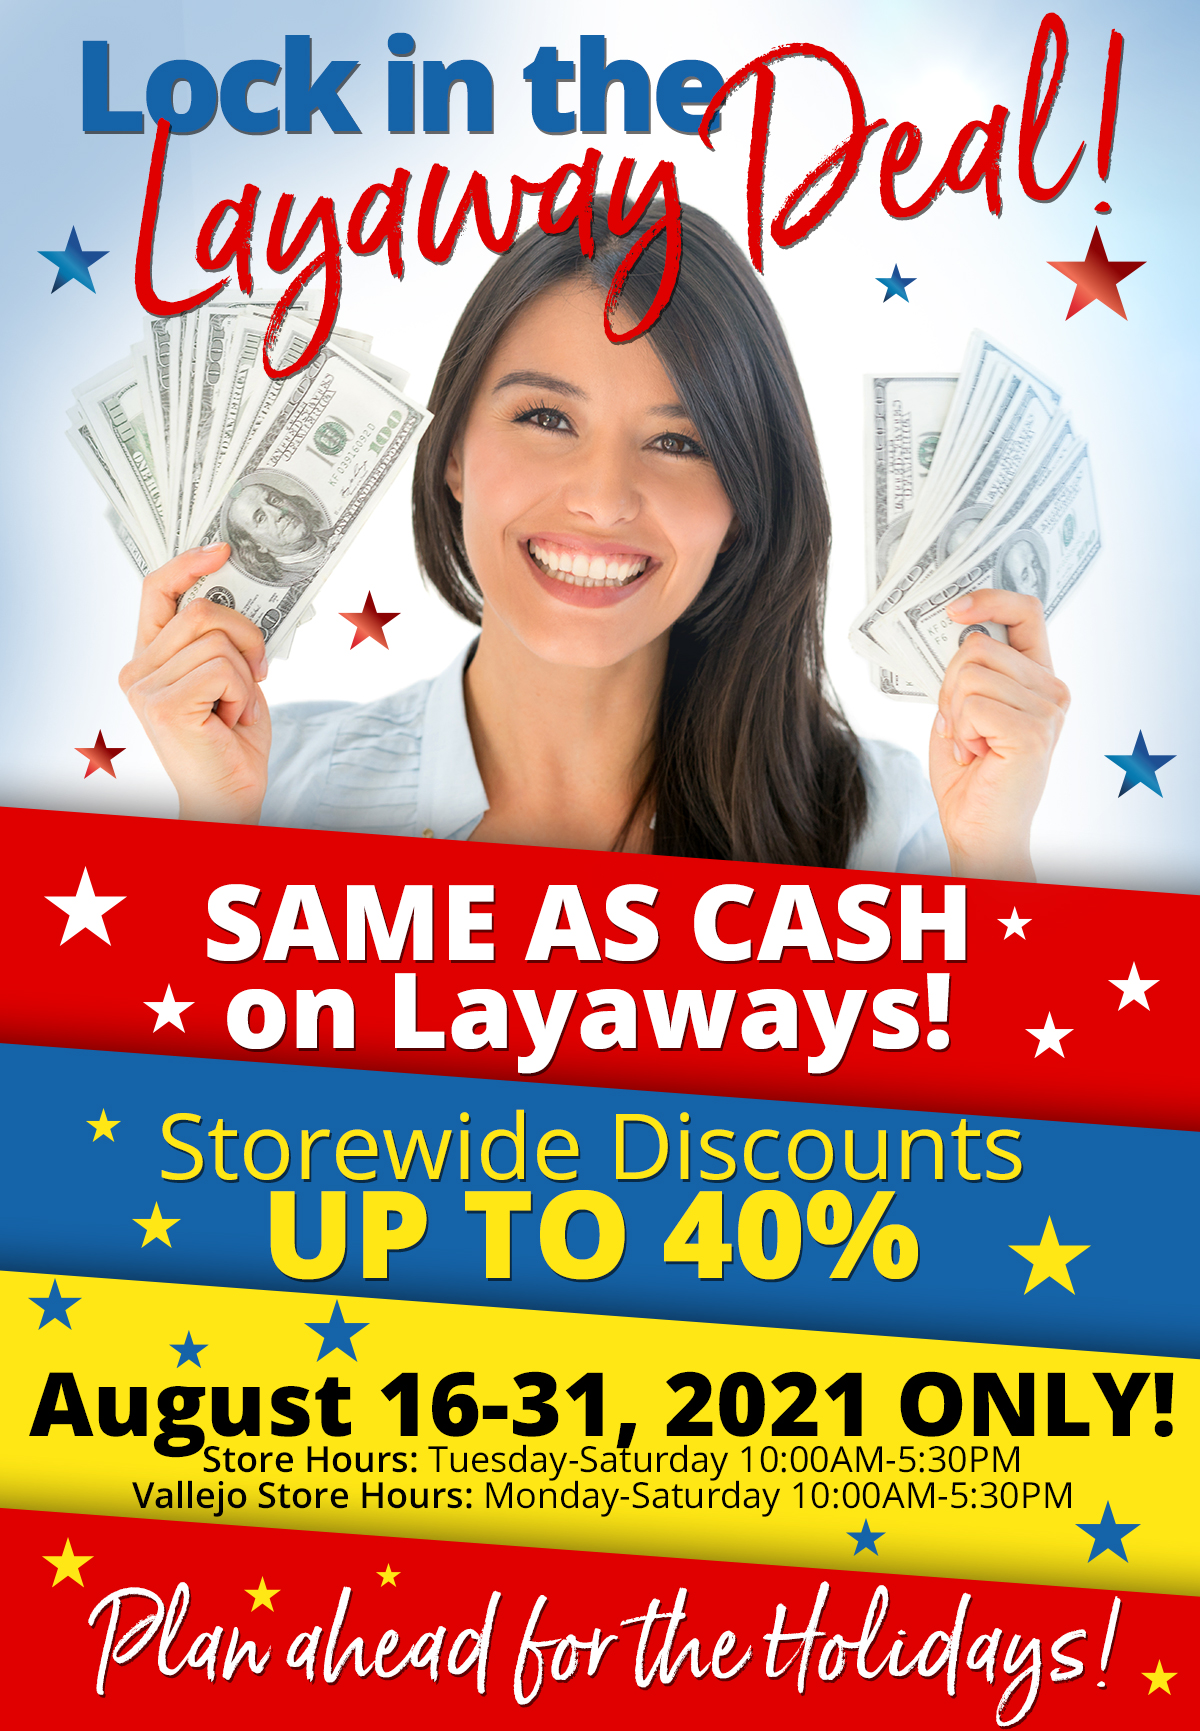 """Lock in the Layaway Deal Same as Cash on Layaways Storewide Discounts up to 40% August 16-31, 2021 ONLY Store Hours: Tuesday-Saturday 10:00AM-5:30PM Vallejo Store Hours: Monday-Saturday 10:00AM-5:30PM ***Plan ahead for the Holidays!*** Down payment of 25% is required for """"same as cash"""" offer. Offer available August 16-31, 2021 only. Offer cannot be combined with any other offer. Discount not available on previously sold merchandise. Excludes all 3rd party appraised/certified jewelry. Rolex, gold and other high end watches excluded. See store for details and discounts."""